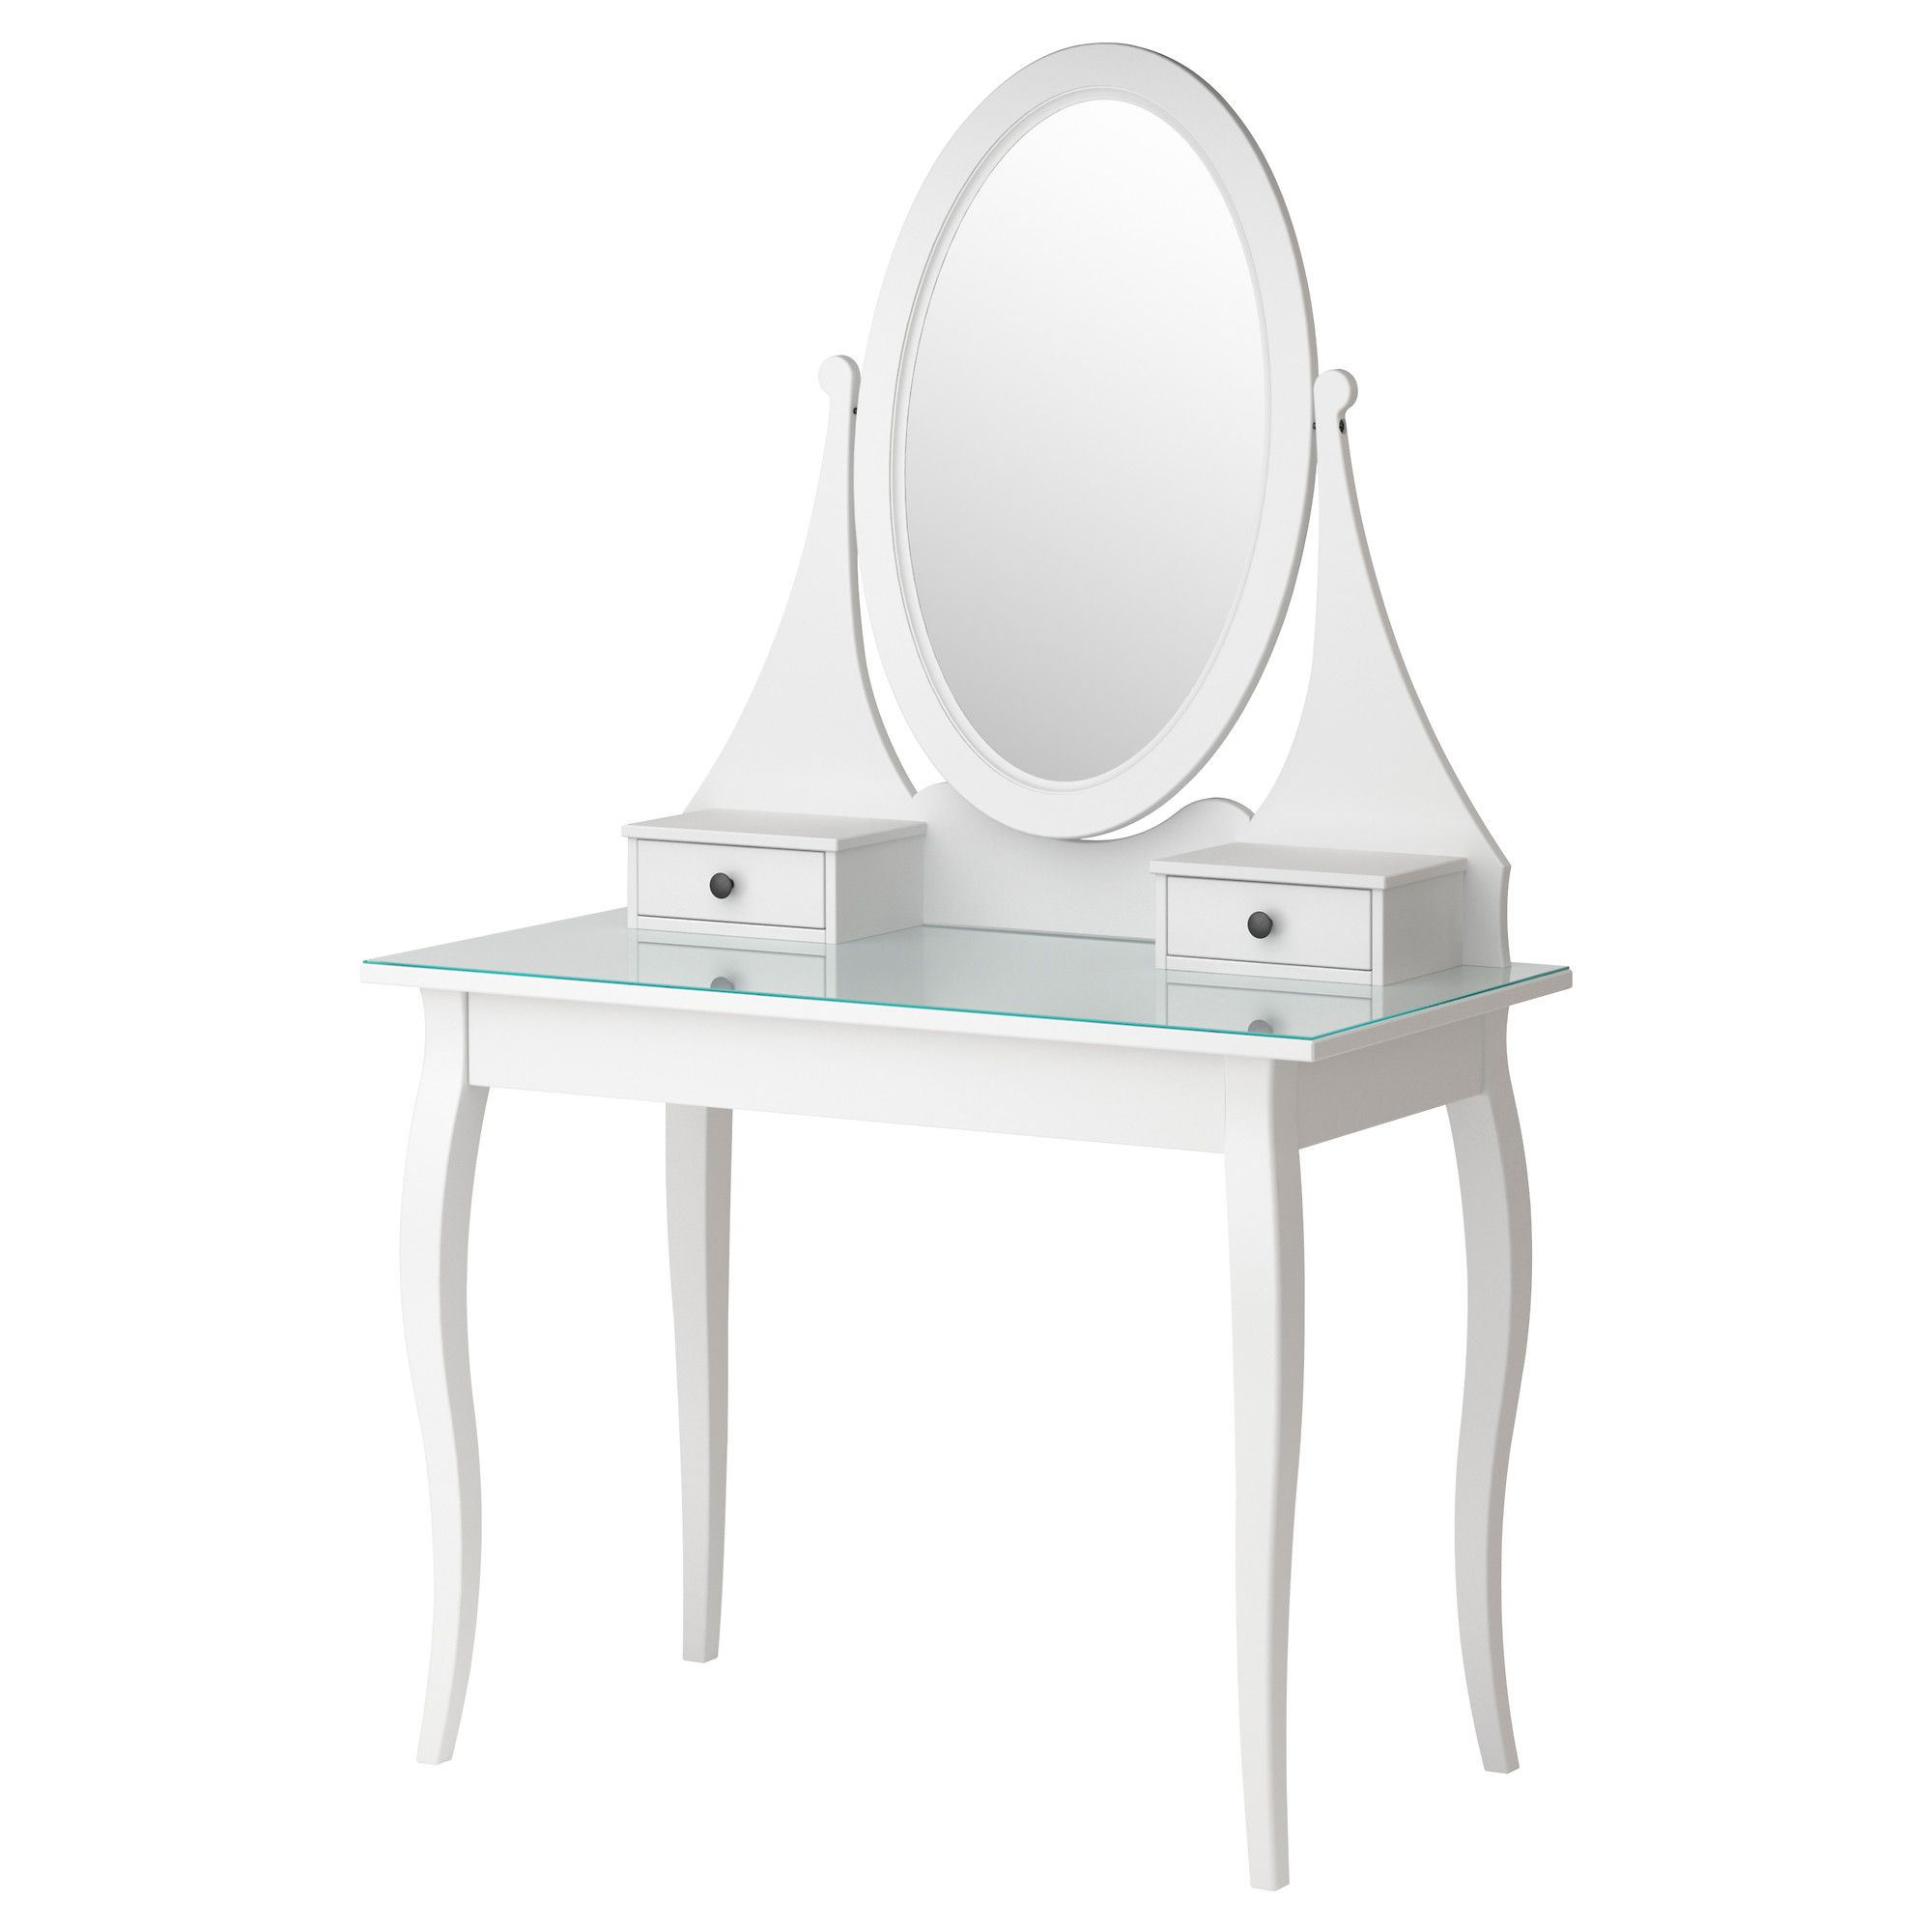 hemnes dressing table with mirror ikea width 39 3 8. Black Bedroom Furniture Sets. Home Design Ideas